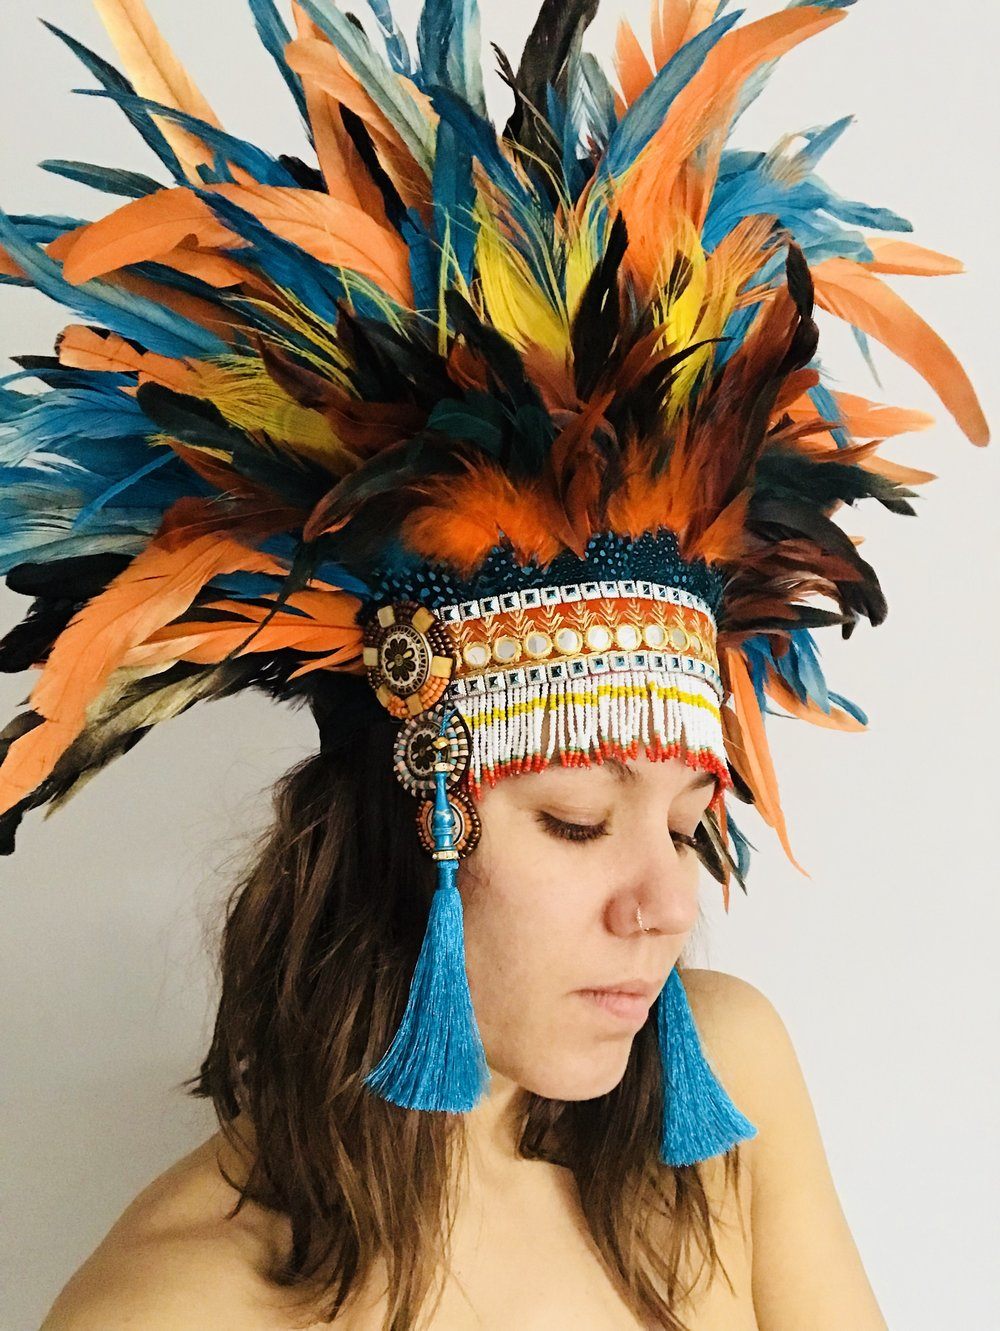 Warrior Woman Rooster Feather Tassel Headdress